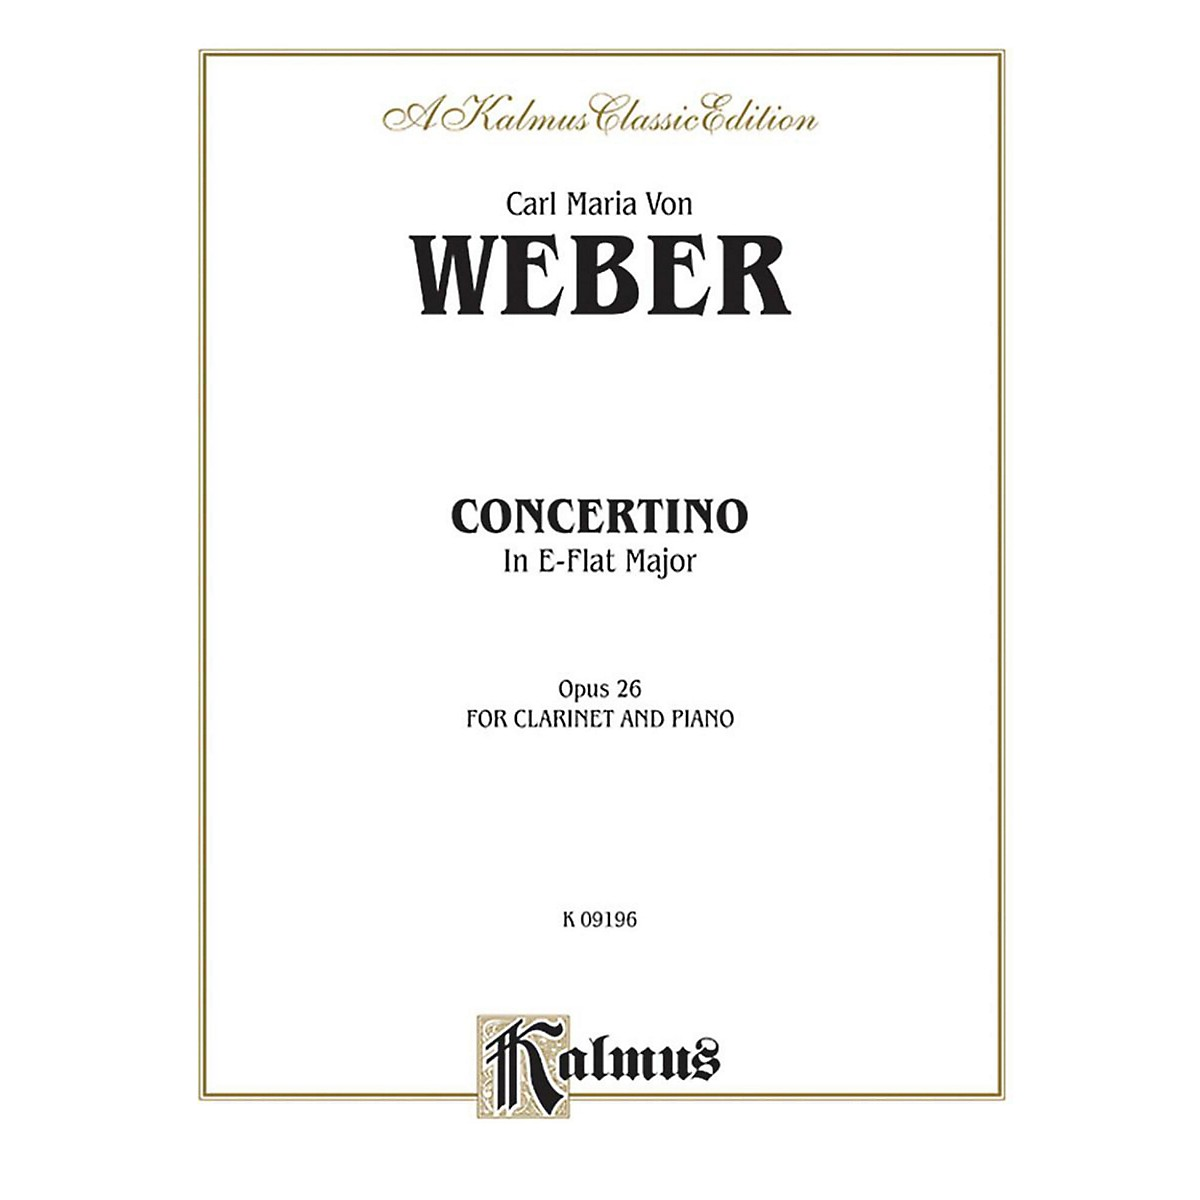 Alfred Concertino for Clarinet in E-Flat Major Op. 26 for Clarinet By Carl Maria von Weber Book